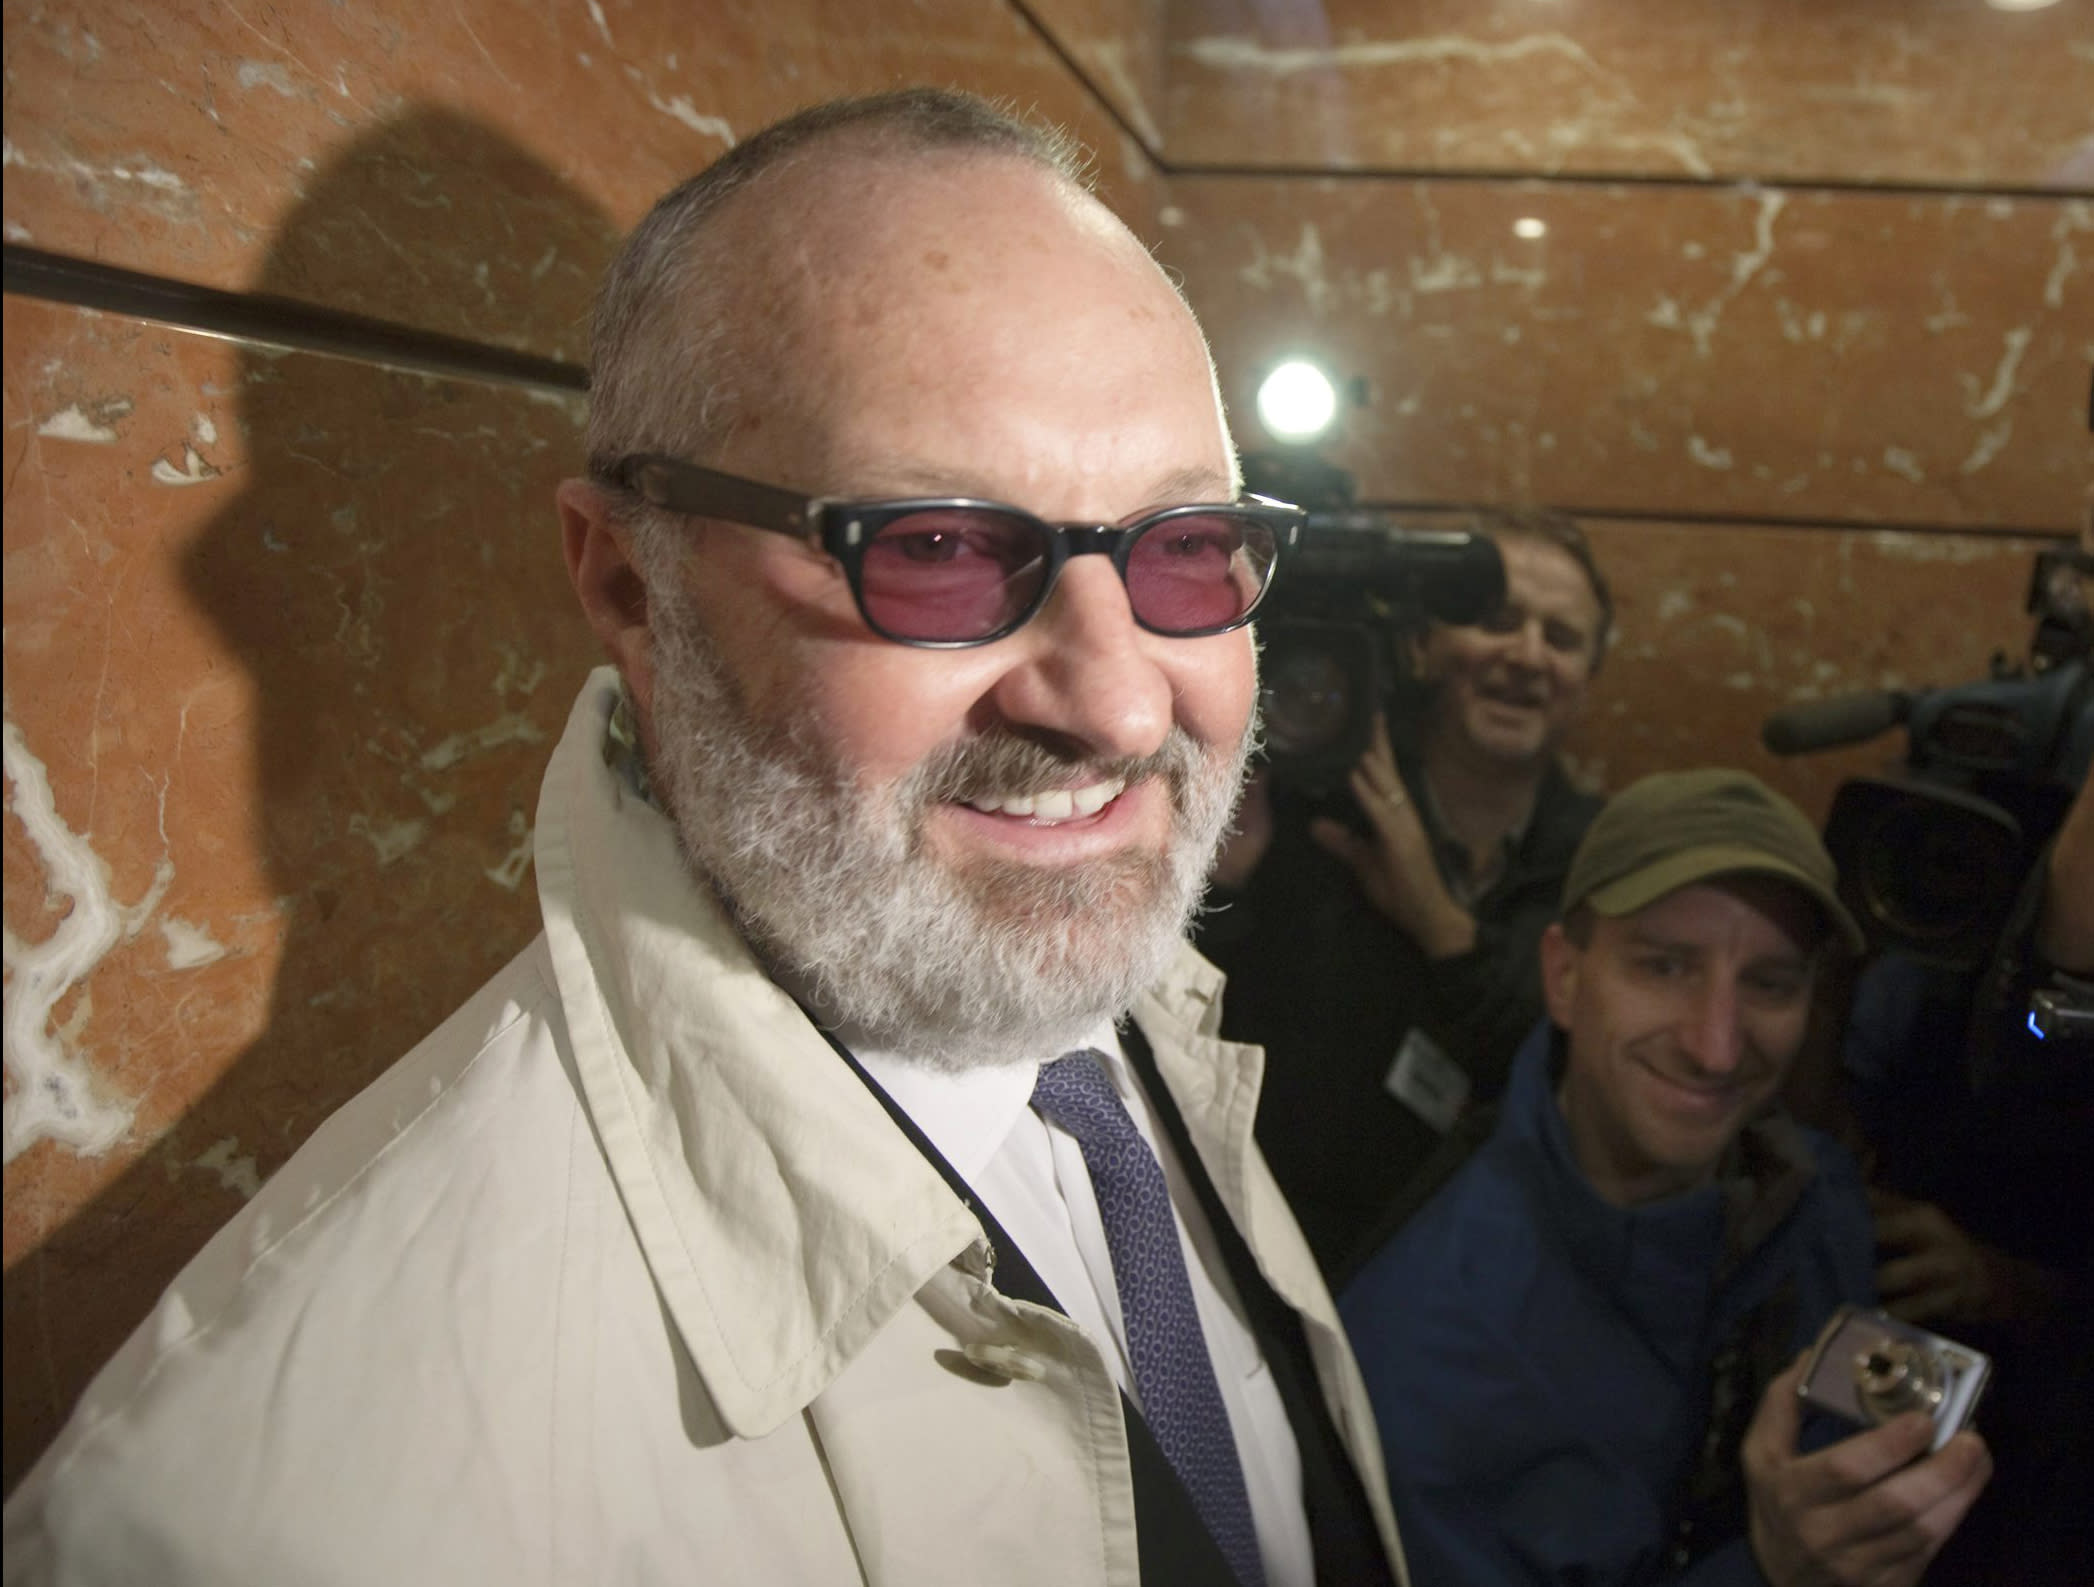 Actor Randy Quaid says Canada could deport him next week